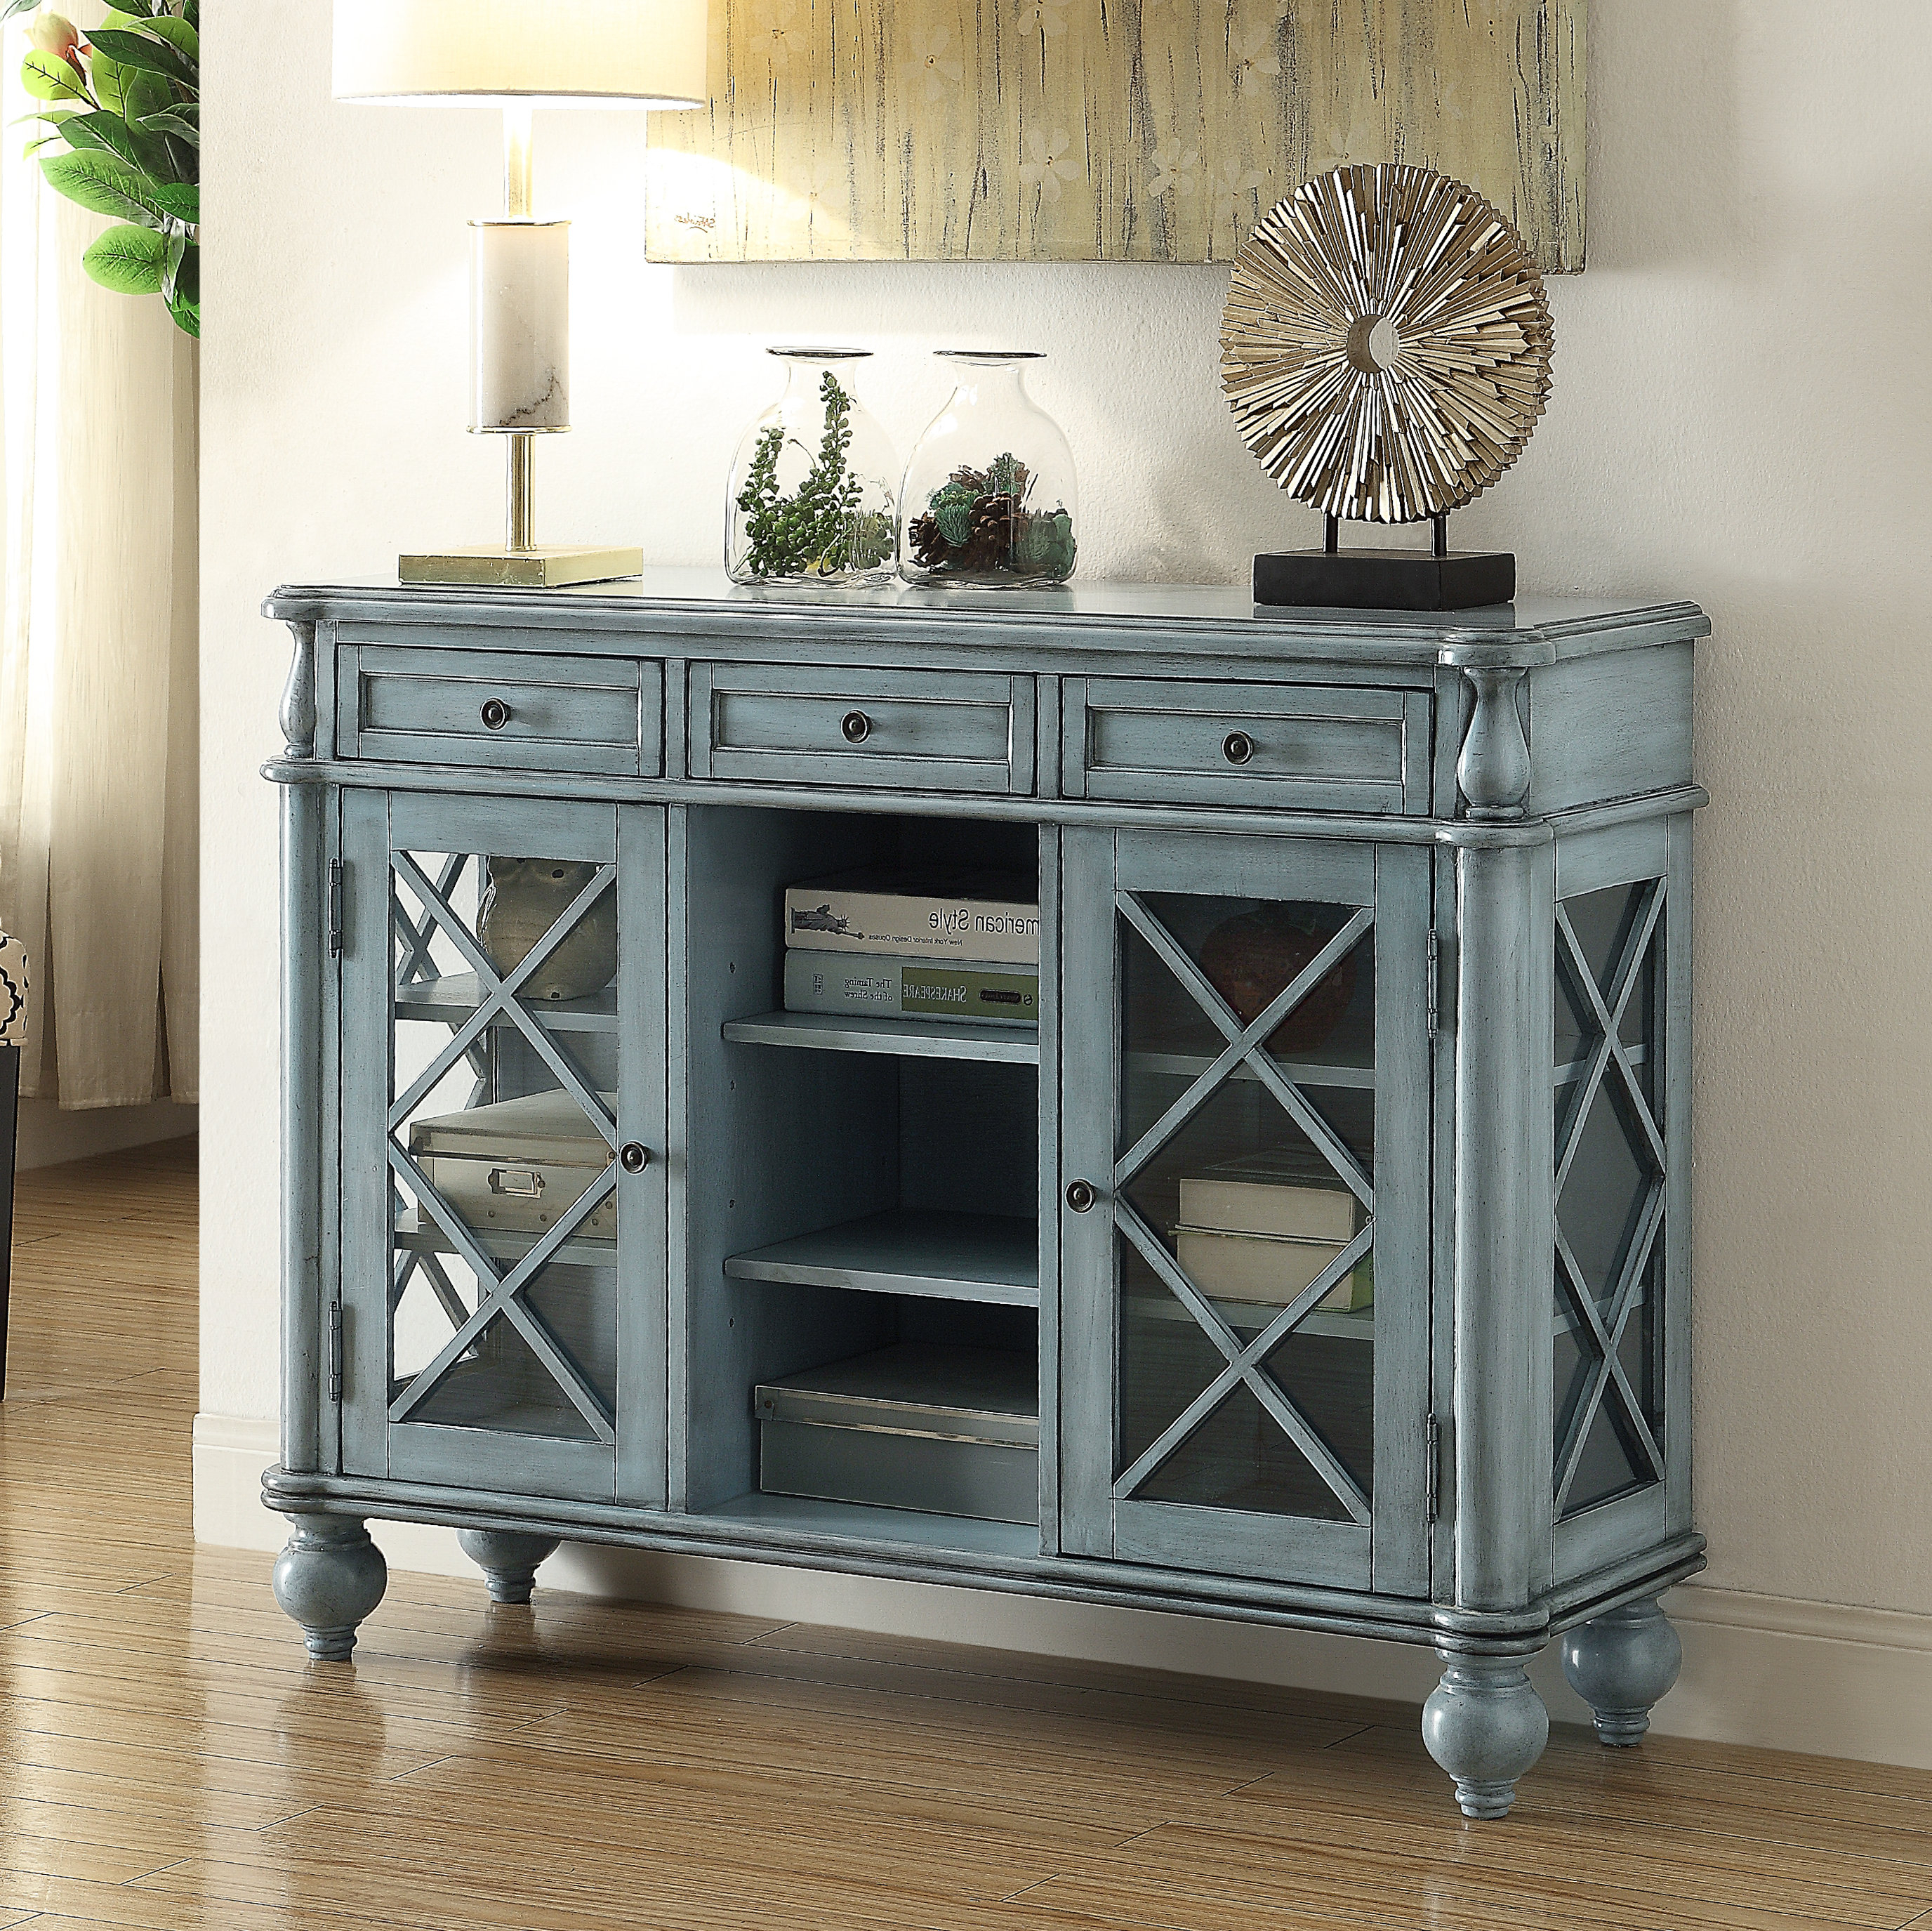 2019 Chicoree Charlena Sideboards Within Cottage & Country Sideboard / Credenza Sideboards & Buffets (Gallery 7 of 20)